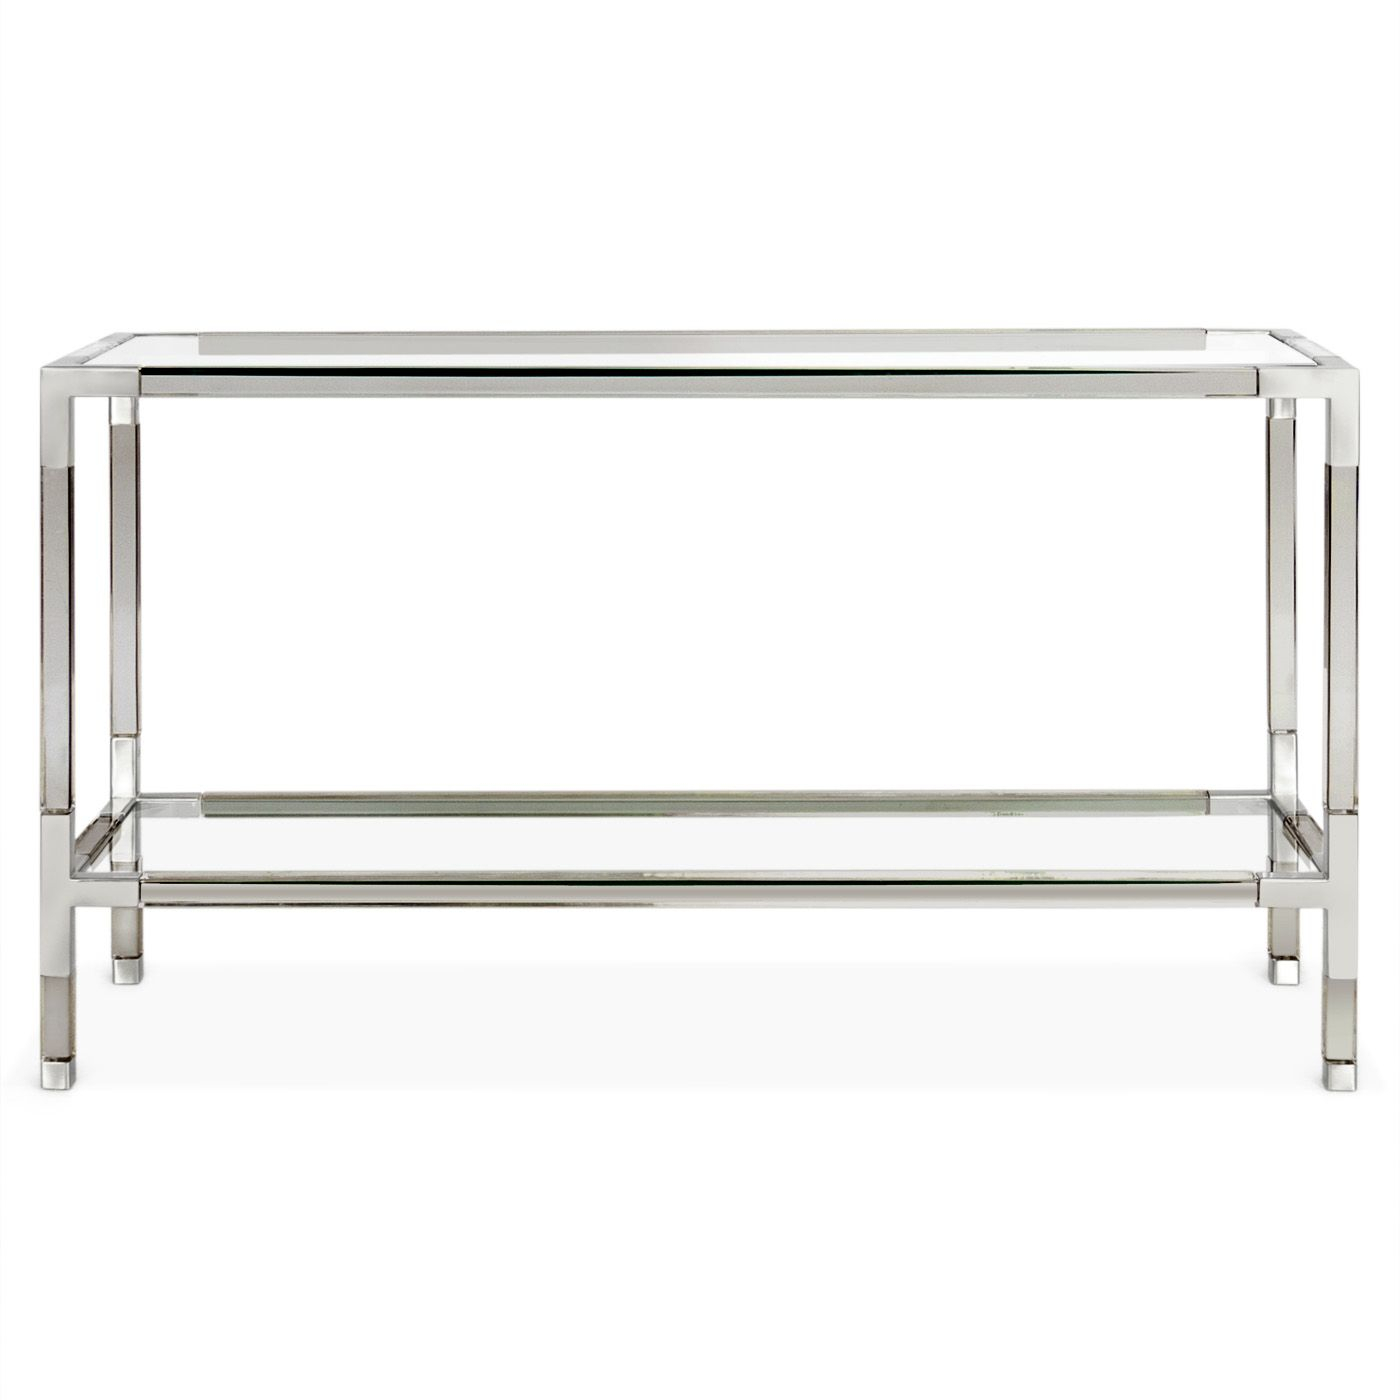 New Furniture - Jacques Console | Mood | This Must Be The Place intended for Jacque Console Tables (Image 28 of 30)